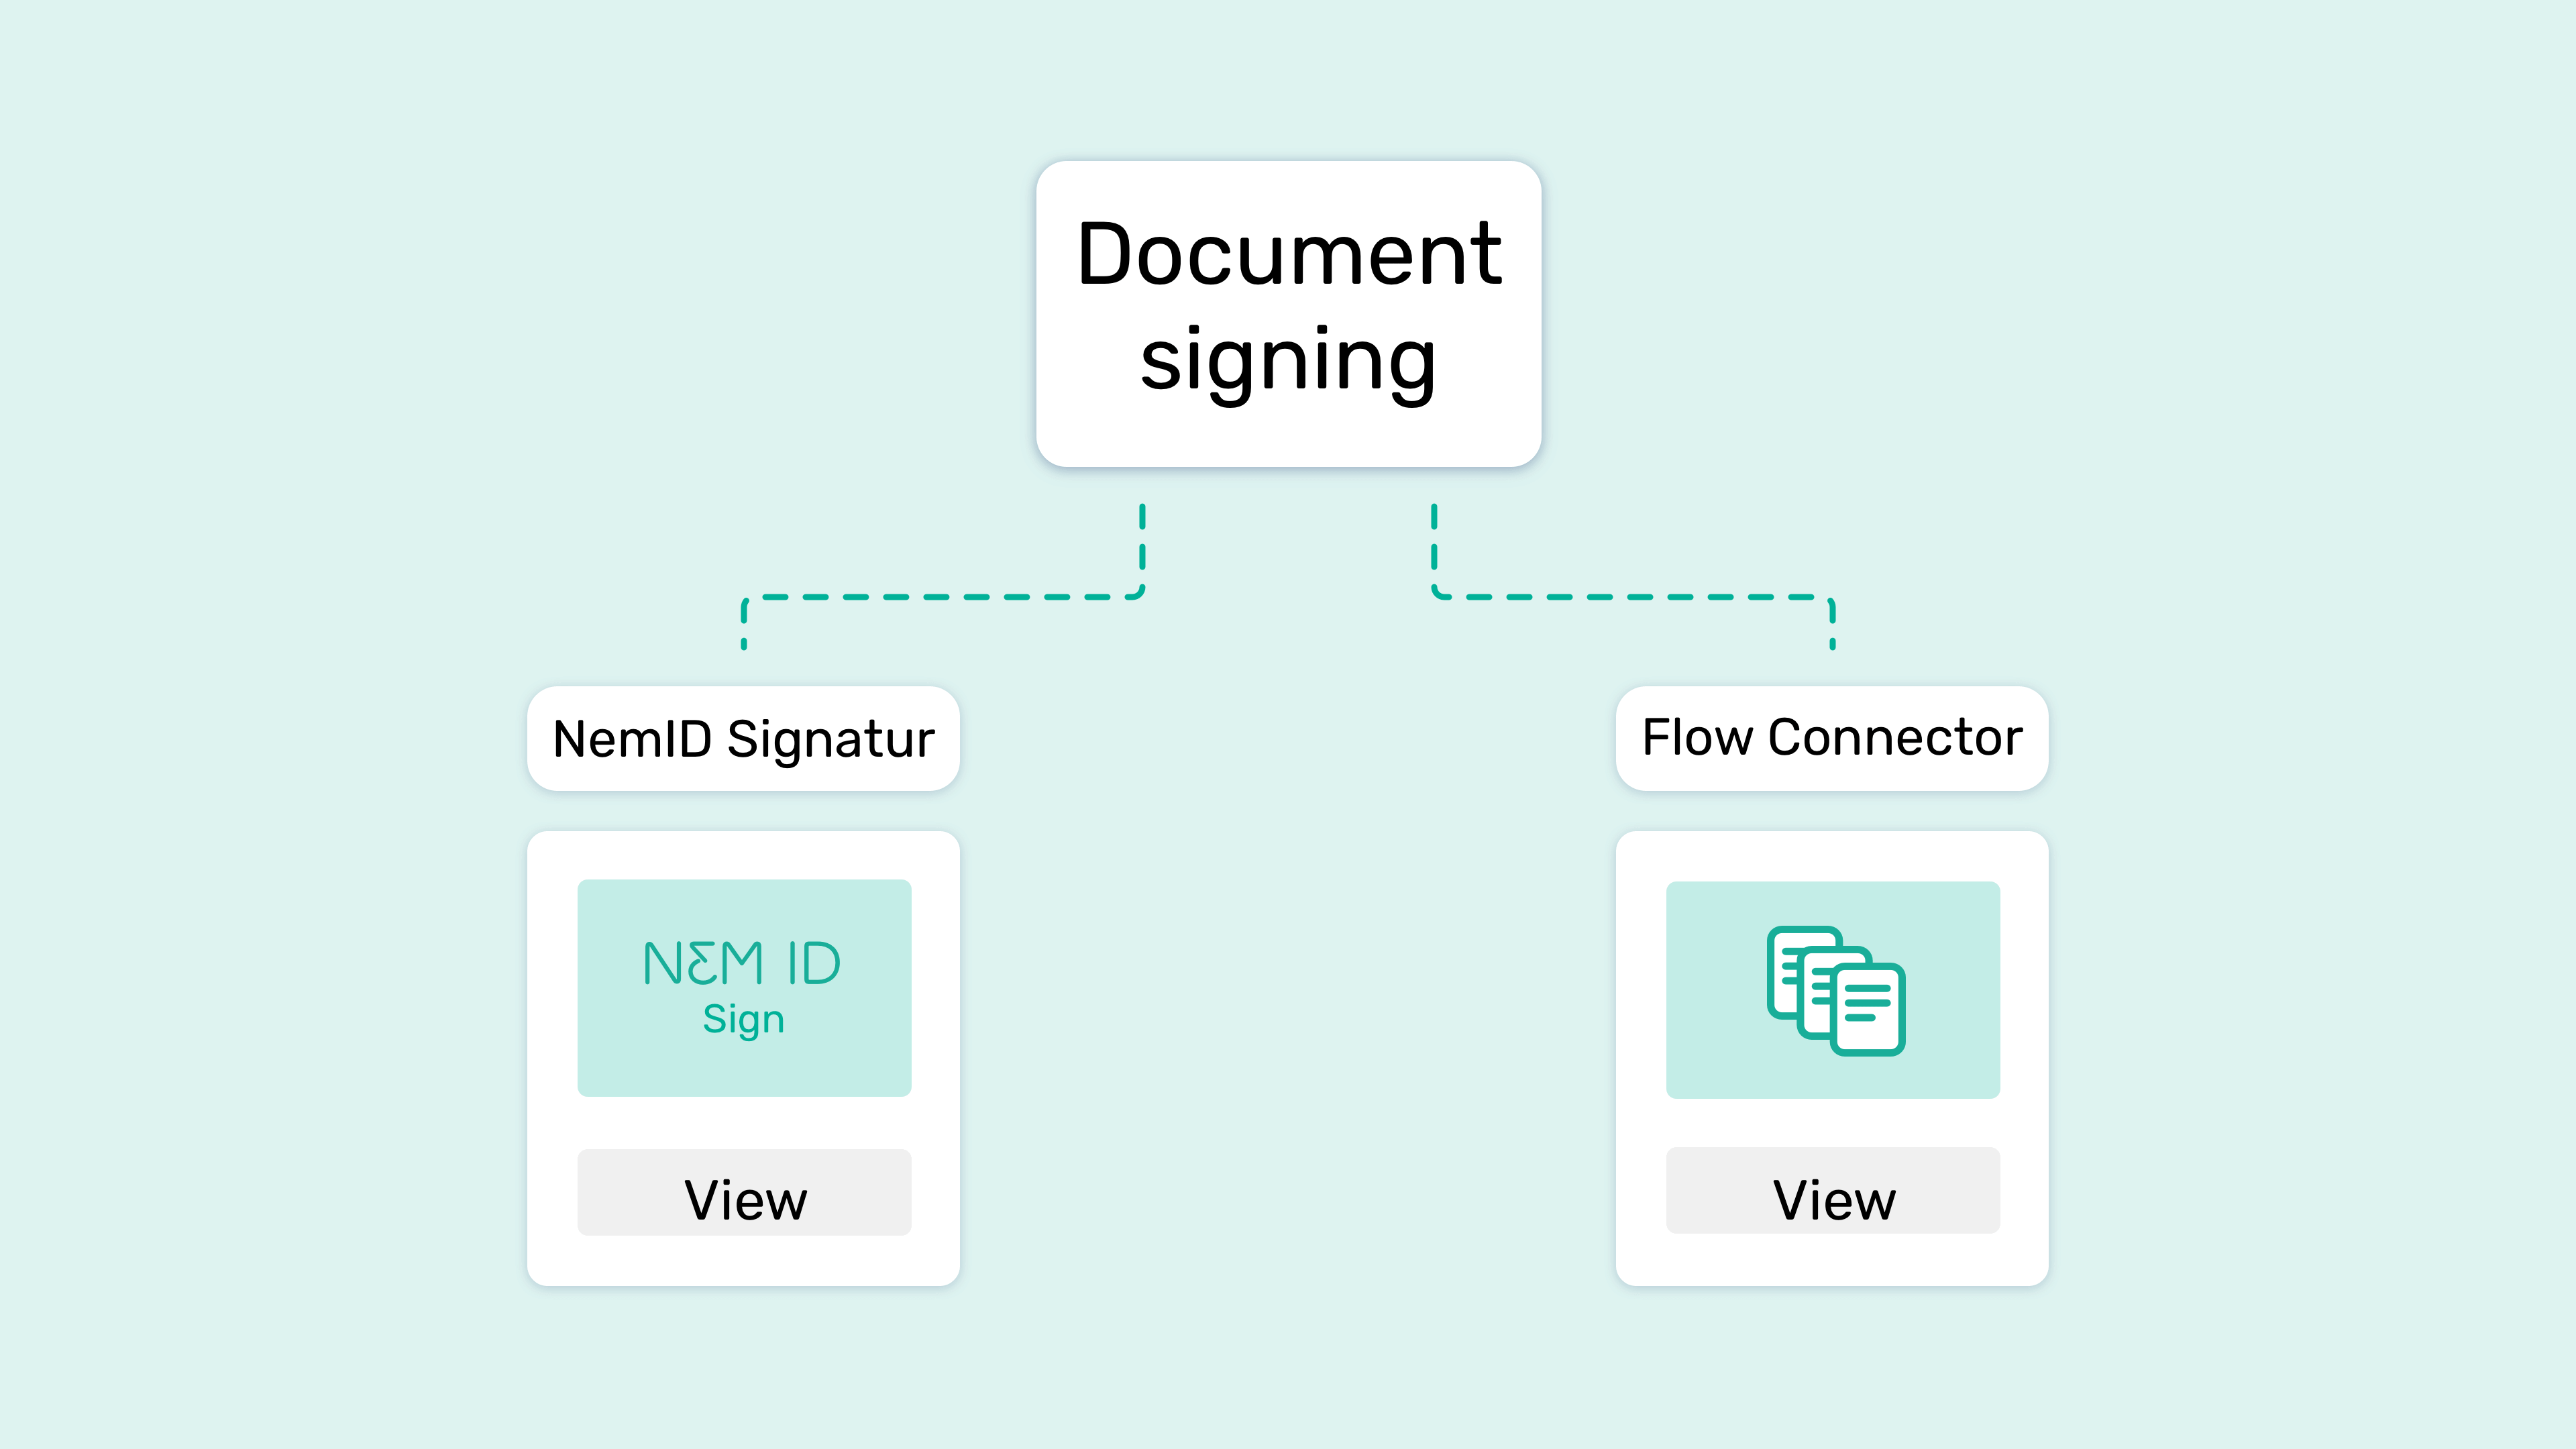 A graph with NemID Signature and Flow Connector logos